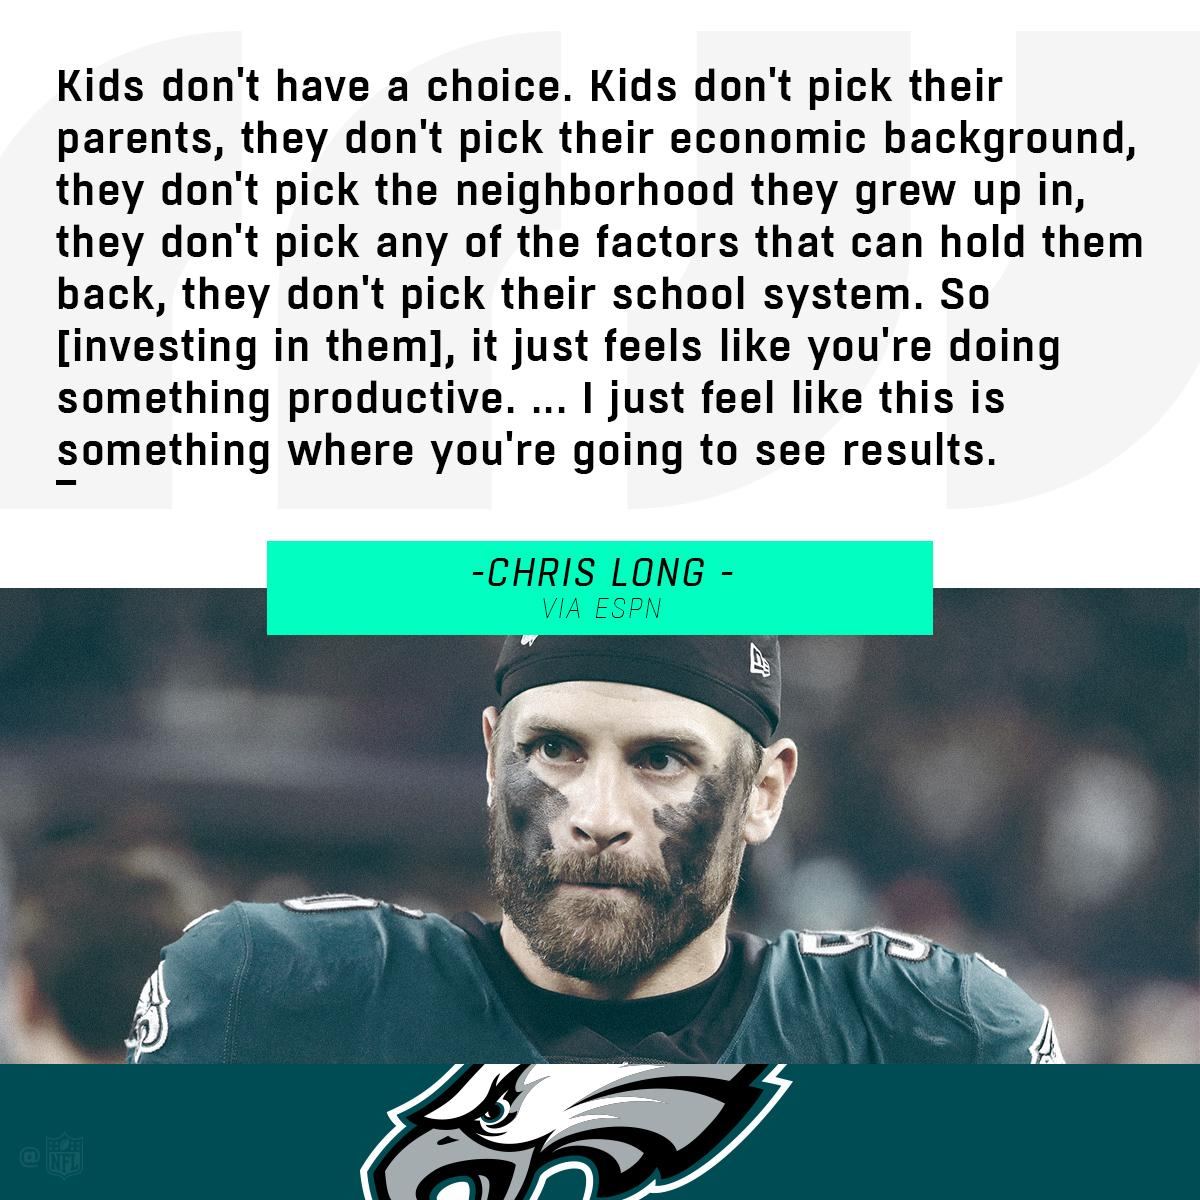 """Chris Long (@JOEL9ONE) is pledging a quarter of his 2018 salary to launch the """"First Quarter for Literacy"""" drive to help increase early literacy among young children. https://t.co/nbwLn820rG"""